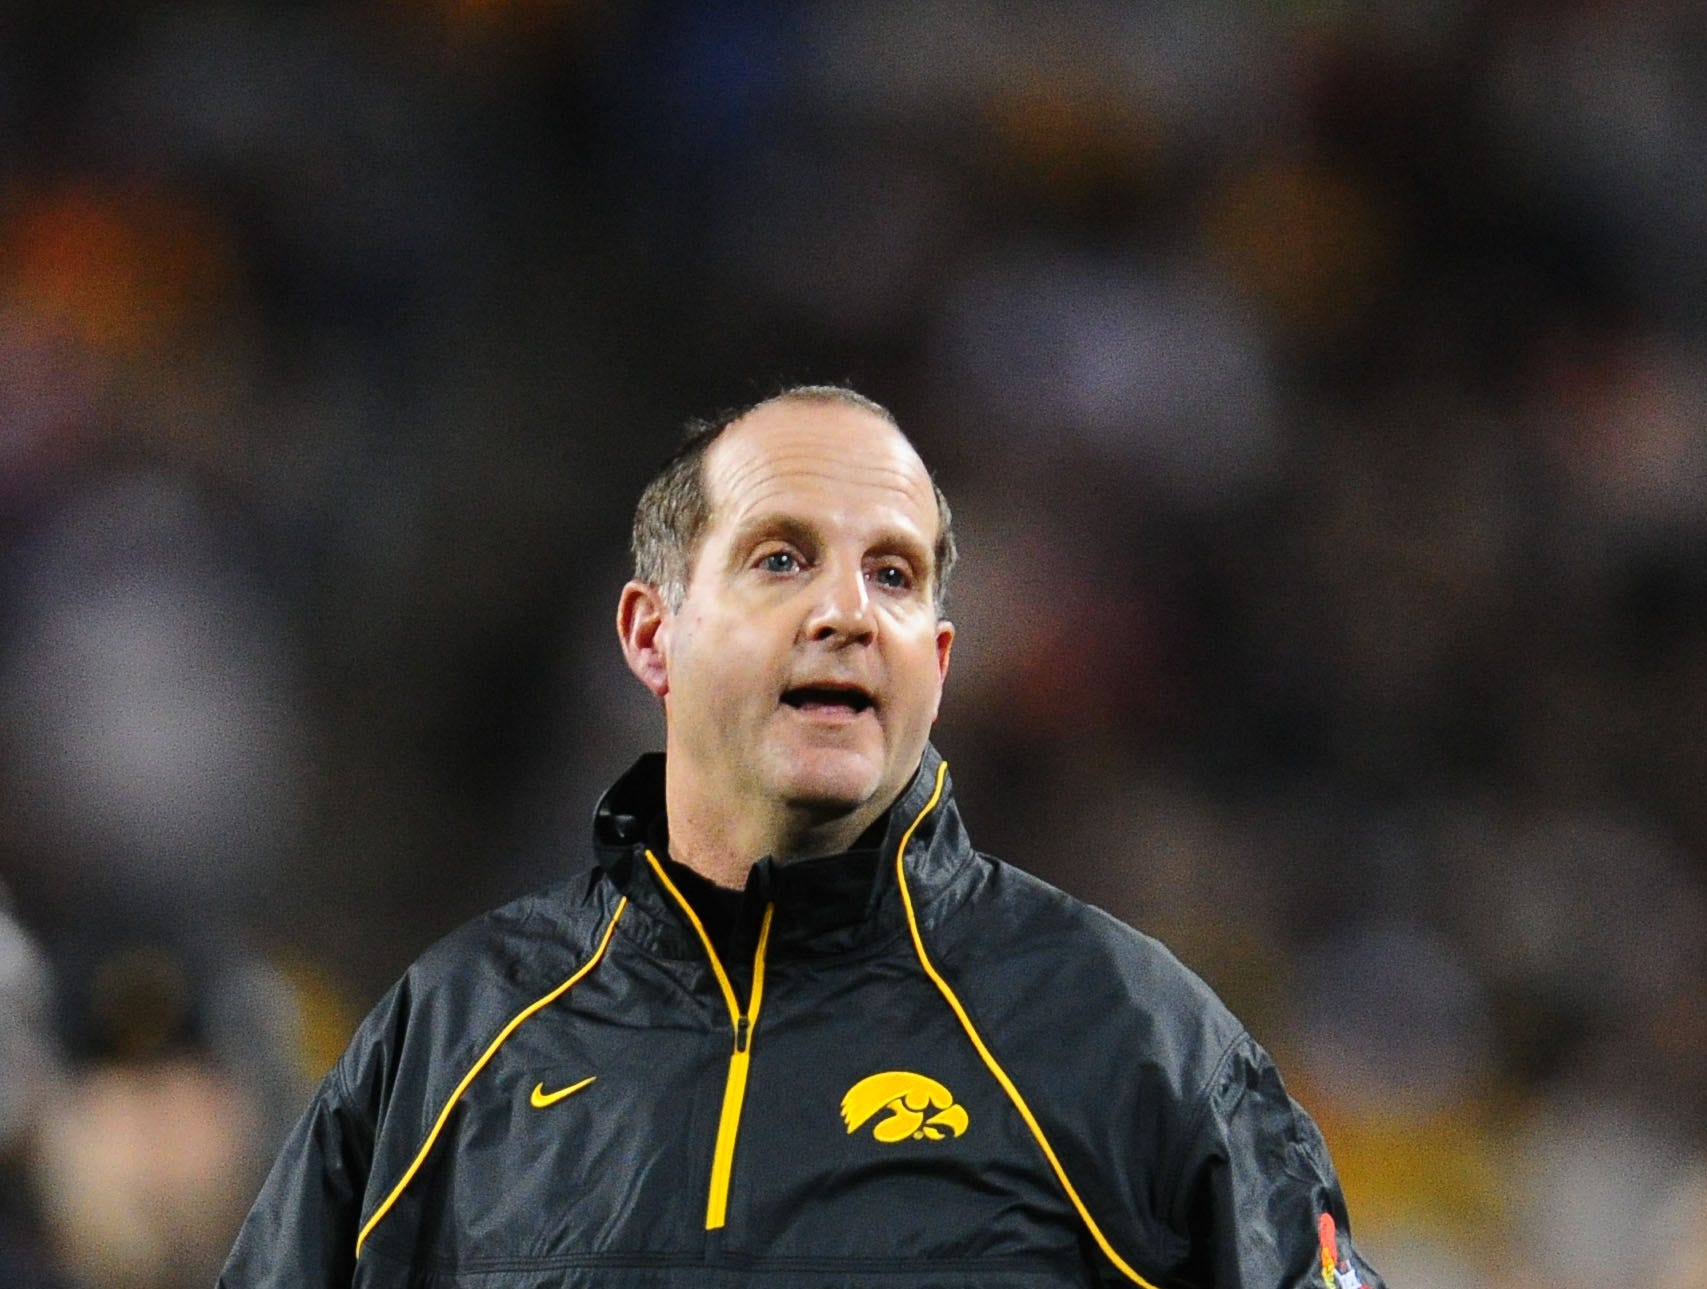 Dec. 28, 2010; Tempe, AZ, USA; Iowa Hawkeyes defensive backs coach Phil Parker against the Missouri Tigers in the 2010 Insight Bowl at Sun Devil Stadium. Iowa defeated Missouri 27-24. Mandatory Credit: Mark J. Rebilas-USA TODAY Sports